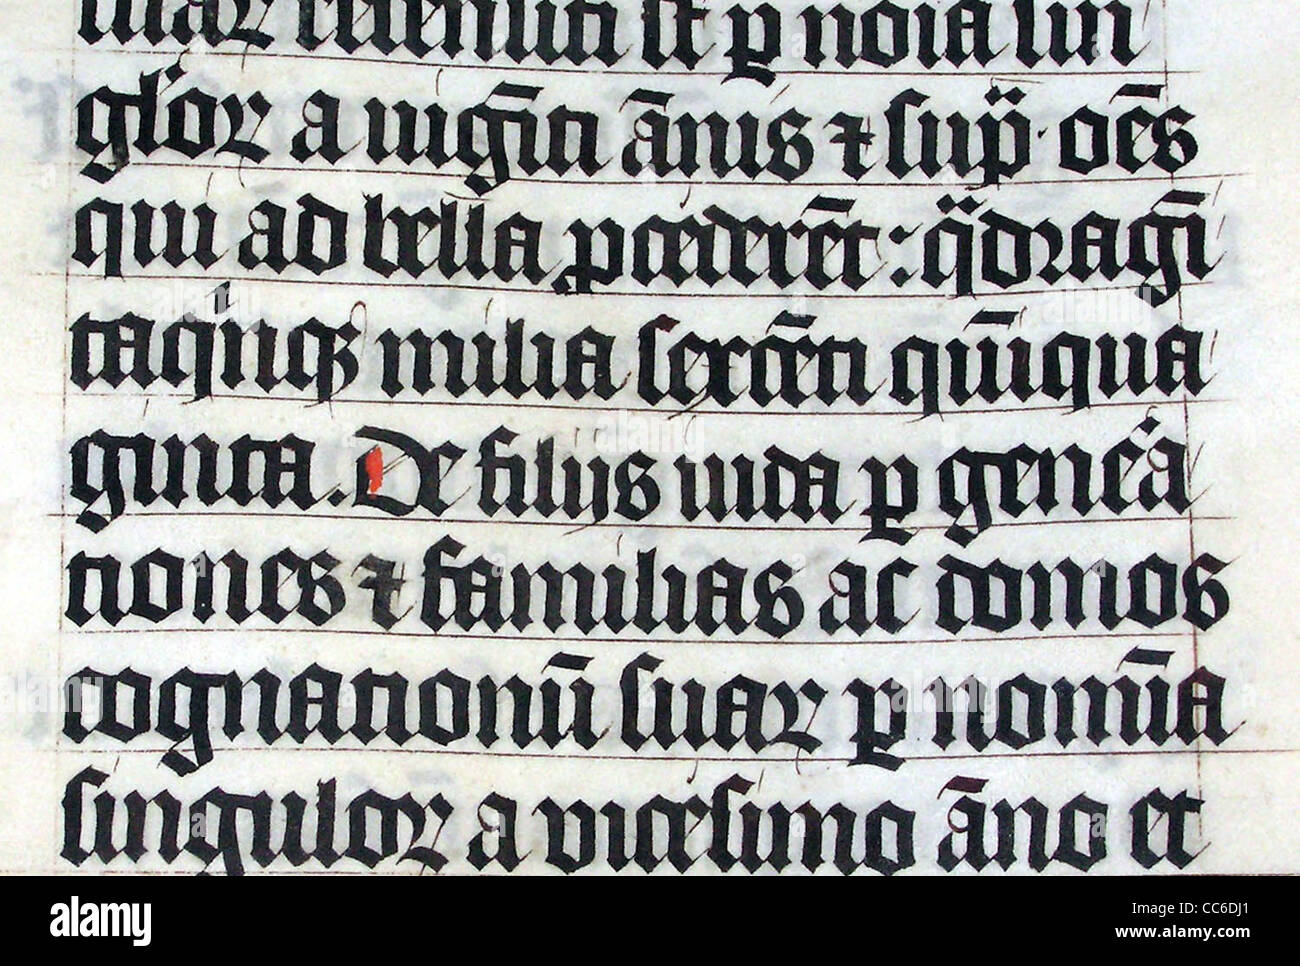 Calligraphy in a Latin Bible of AD 1407 on display in Malmesbury Abbey - Stock Image